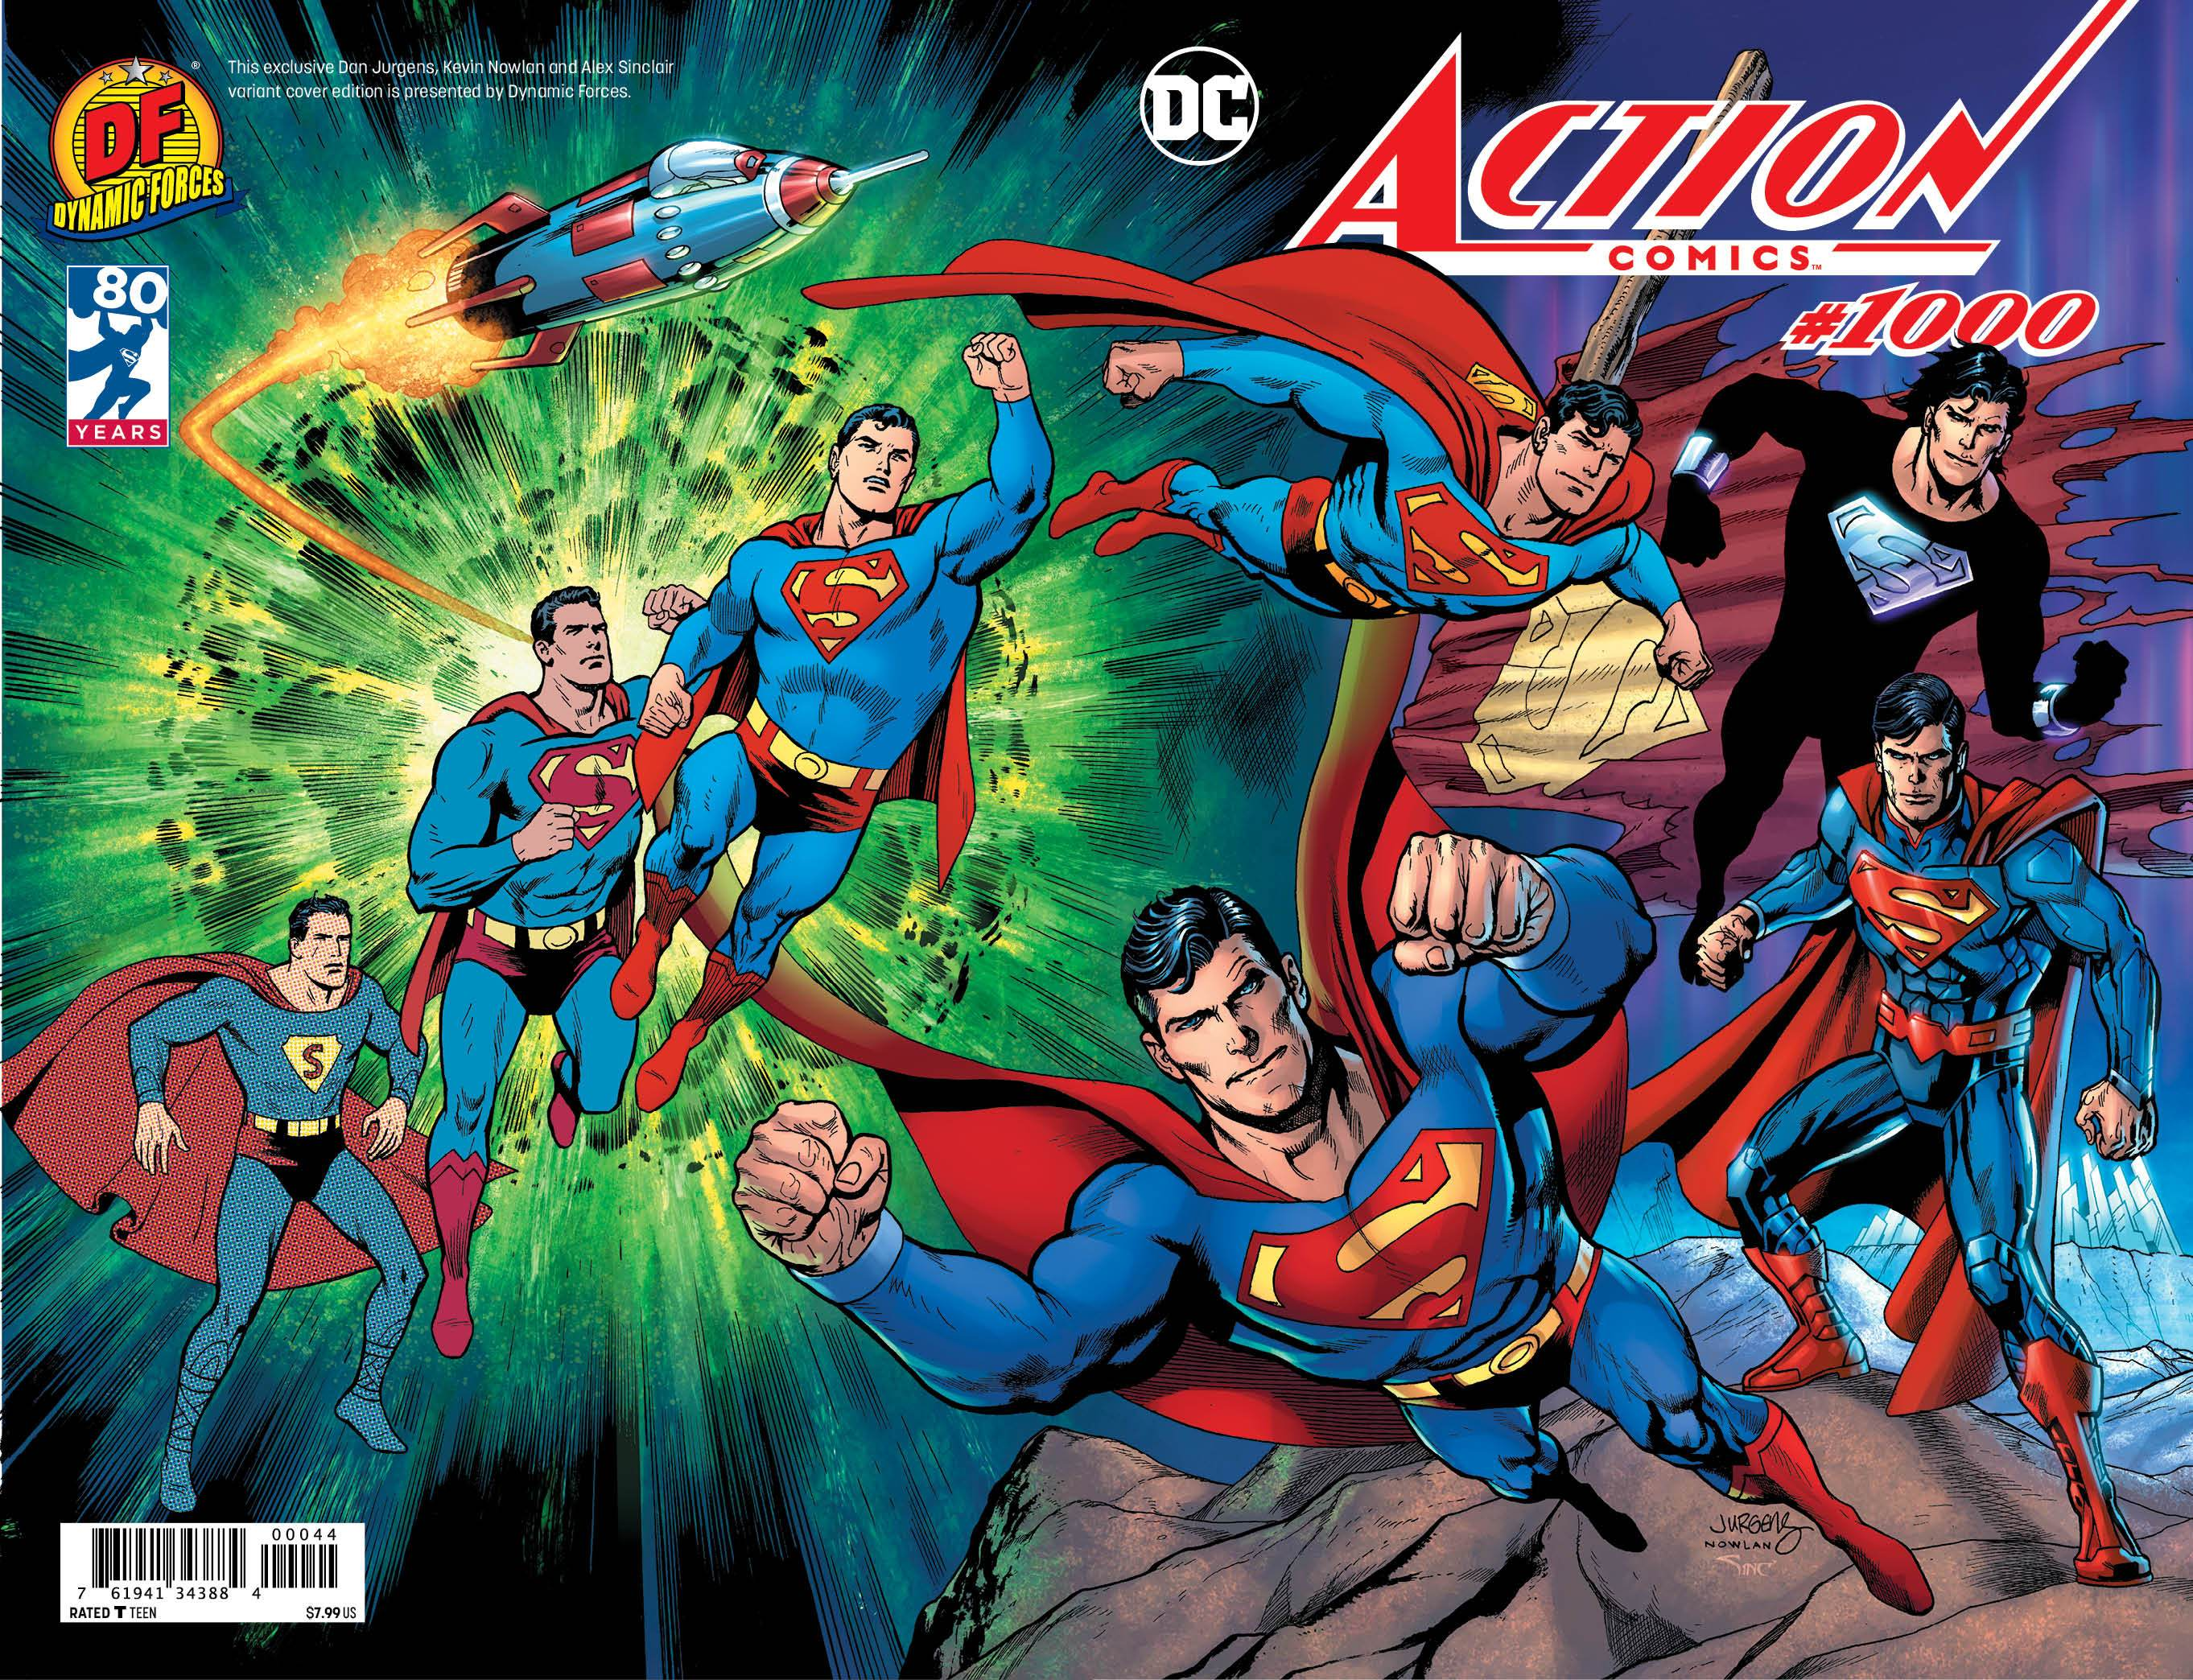 Action-1000-Cover-Dan-Jurgens-Kevin-Nowlan-Alex-Sinclair-Trade-Dress-DYNAMIC-FORCES